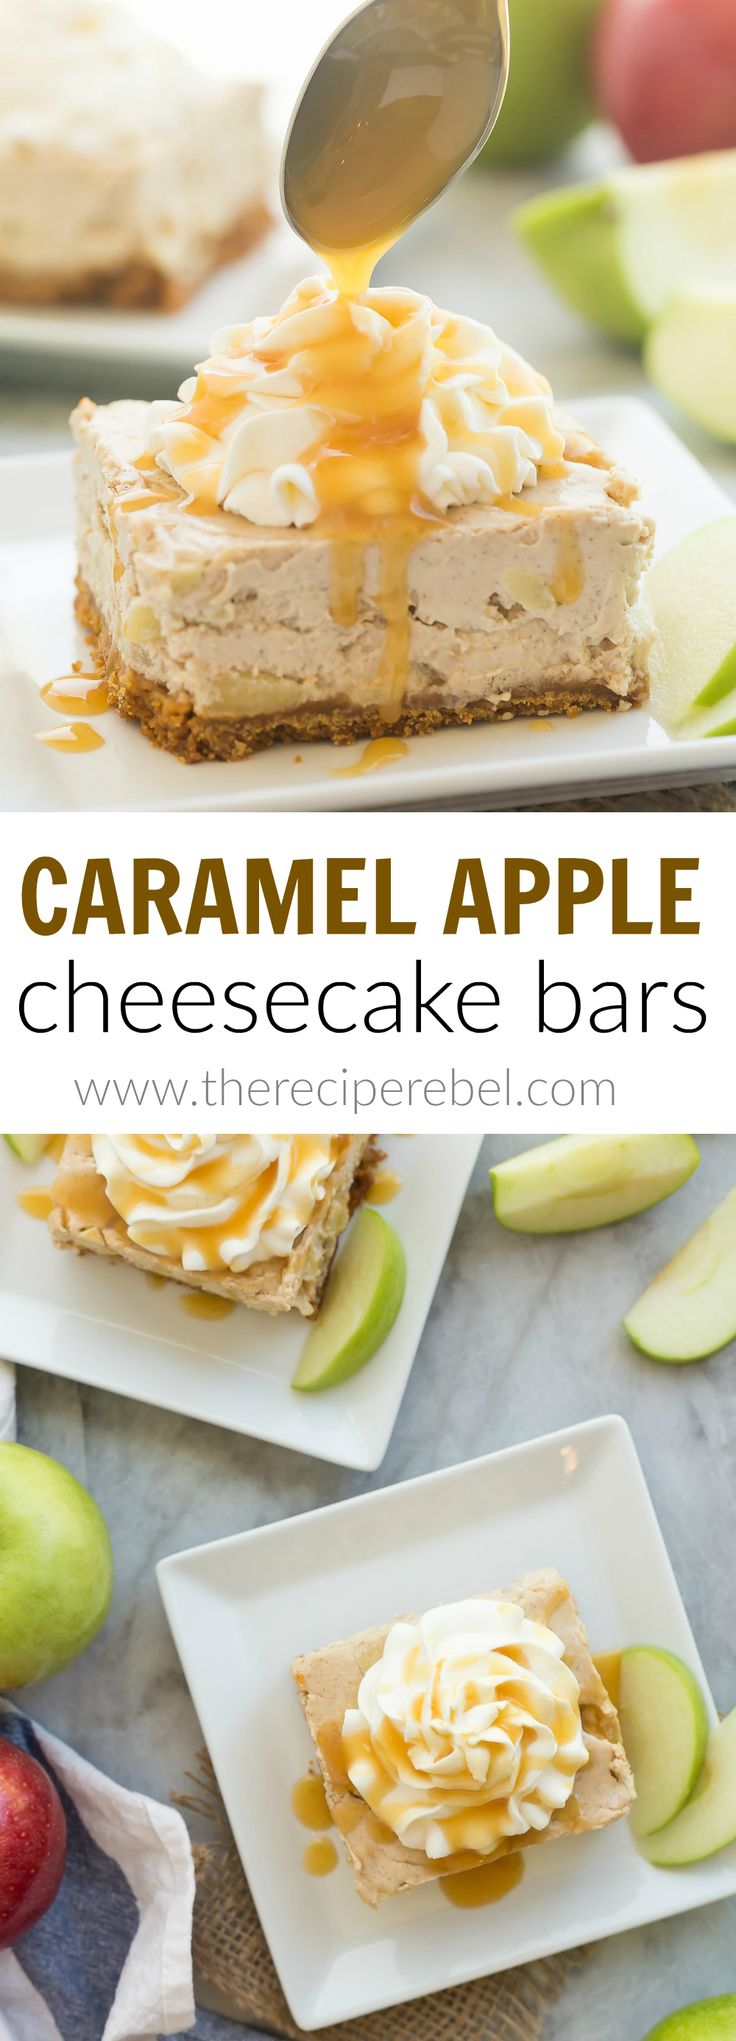 These Caramel Apple Cheesecake Bars are the perfect fall dessert! Loaded with…